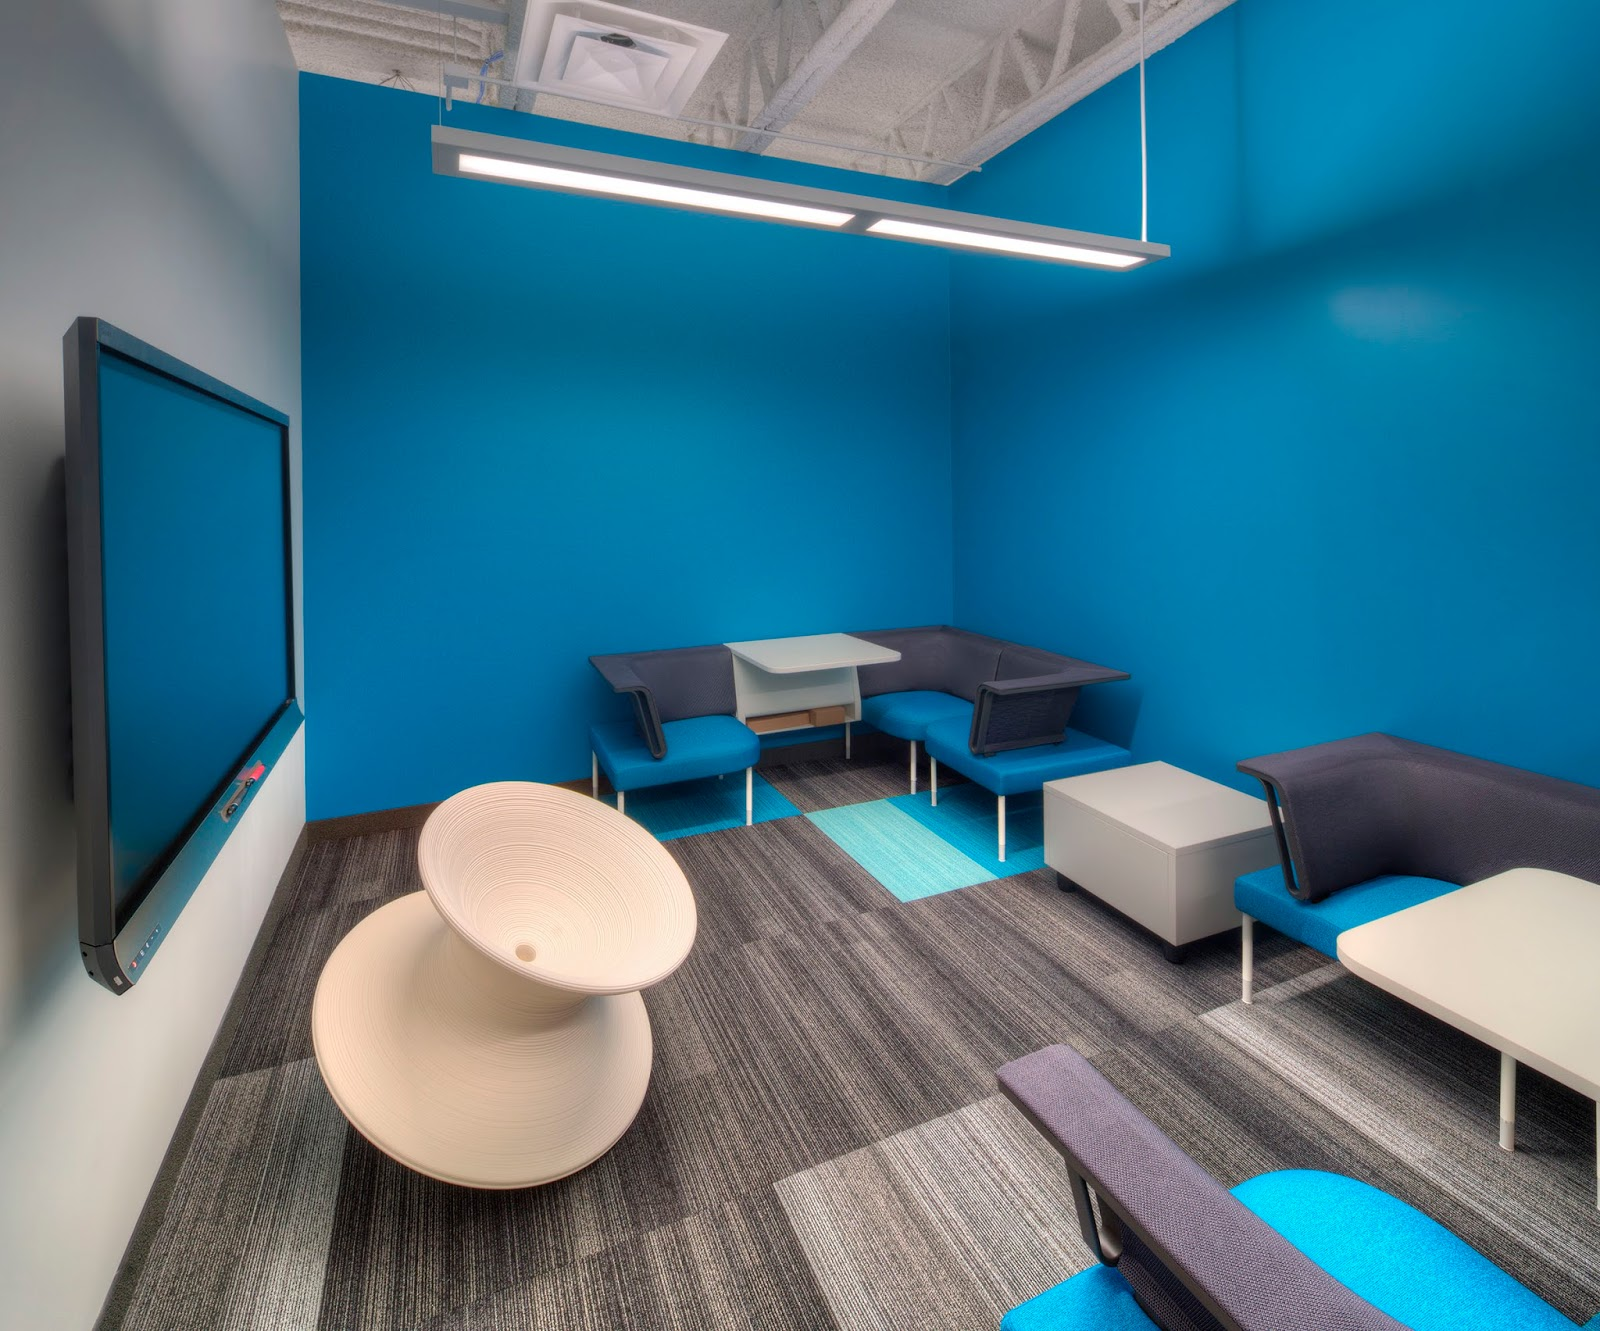 Was Renovated In Order To House The Rapidly Growing Payworks Development Team And Provide All Staff With A State Of Art Collaborative Workspace